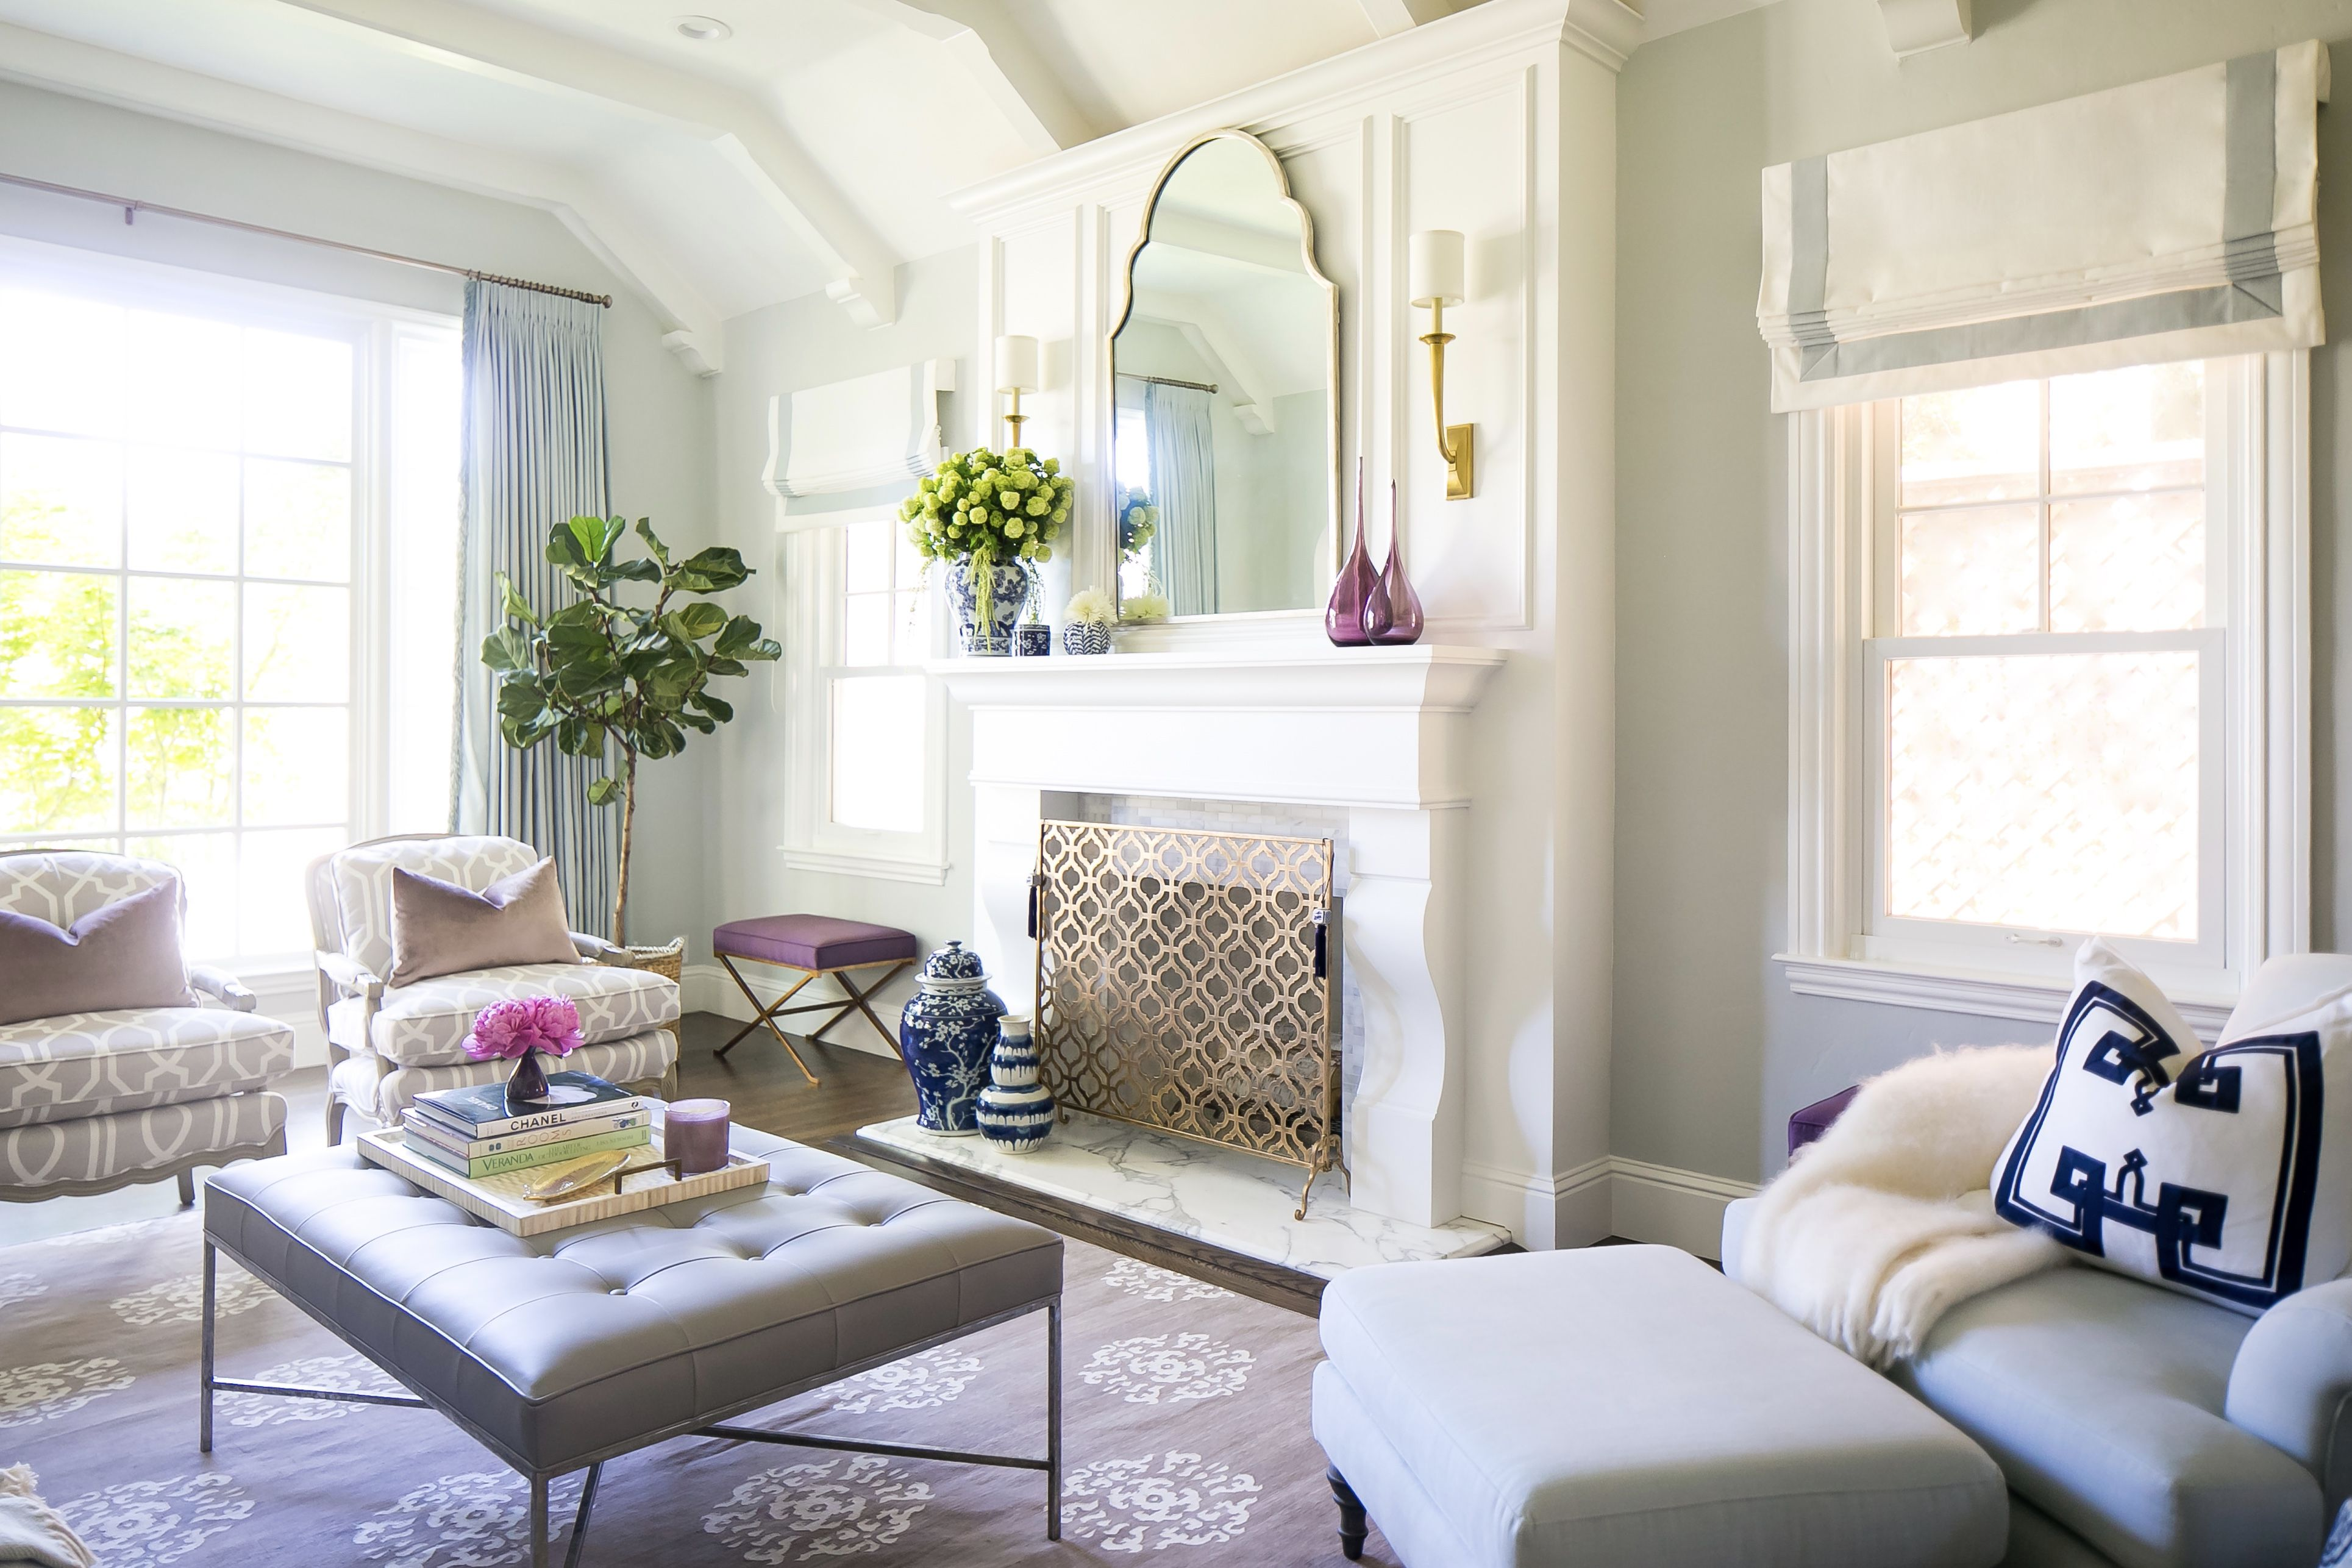 2019 home decor trends current home trends rh housebeautiful com 2019 decorating trends canada 2019 interior decorating trends